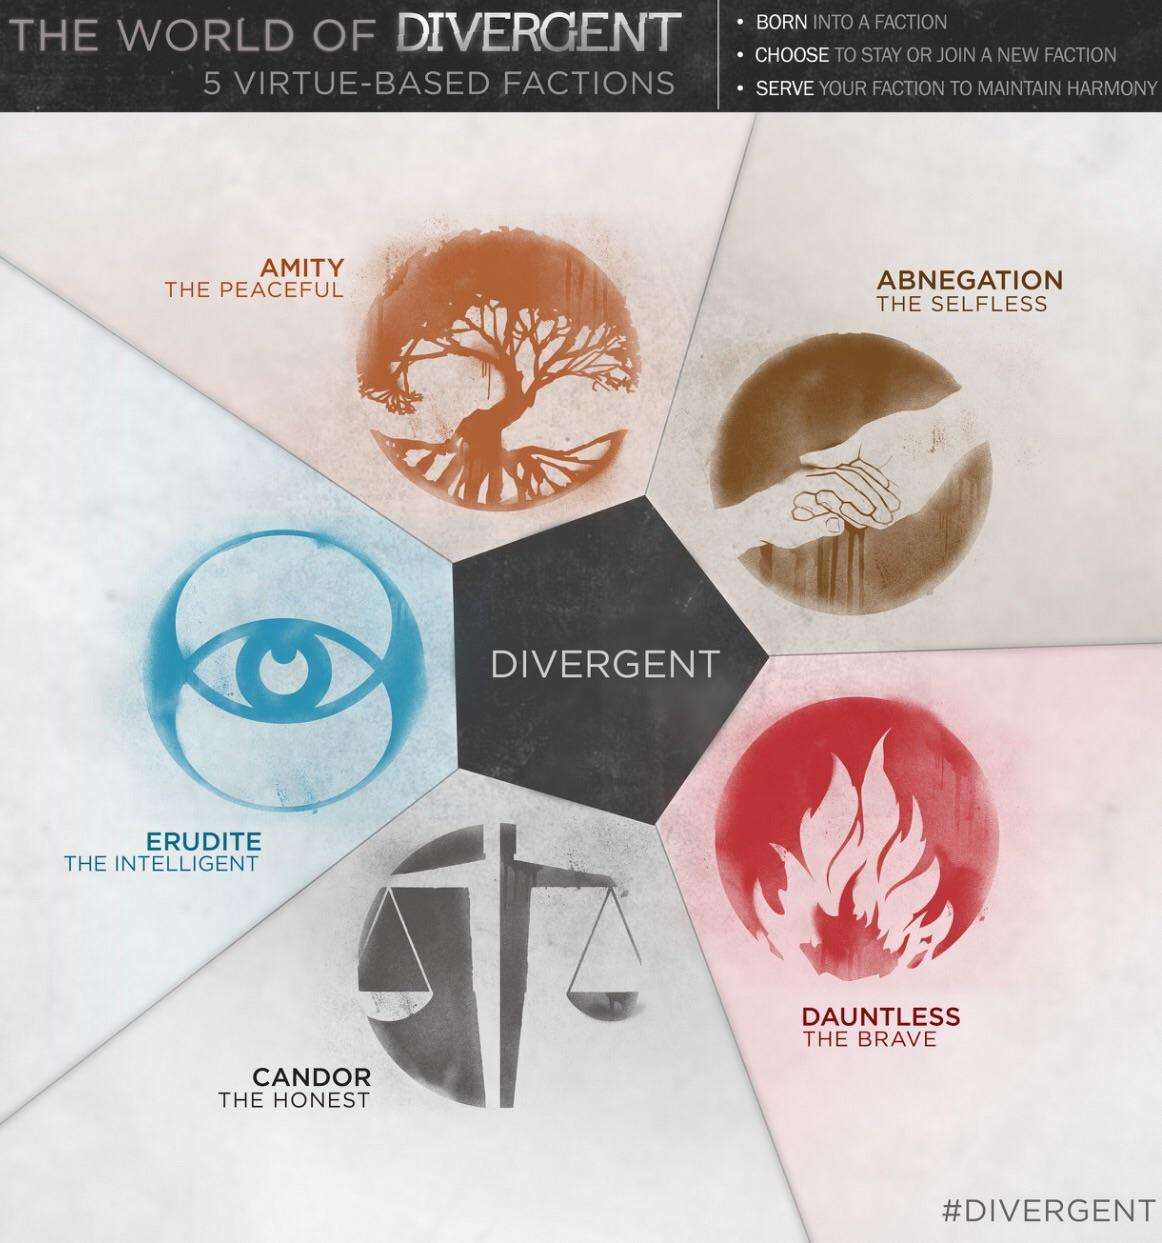 Who is your favorite character in divergent?